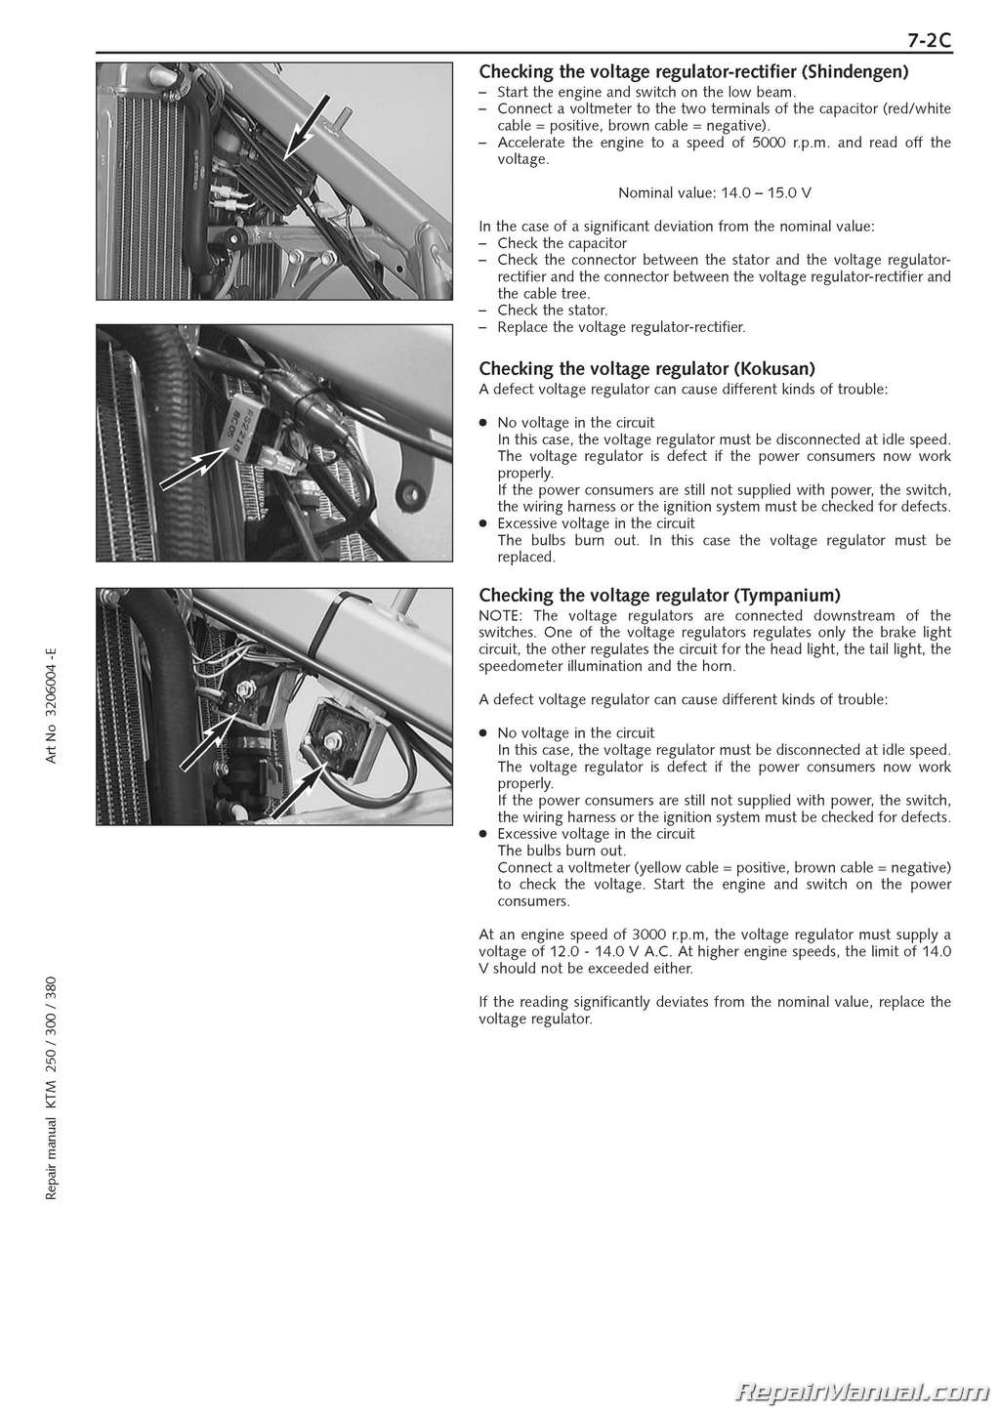 medium resolution of home 2001 ktm wiring diagram